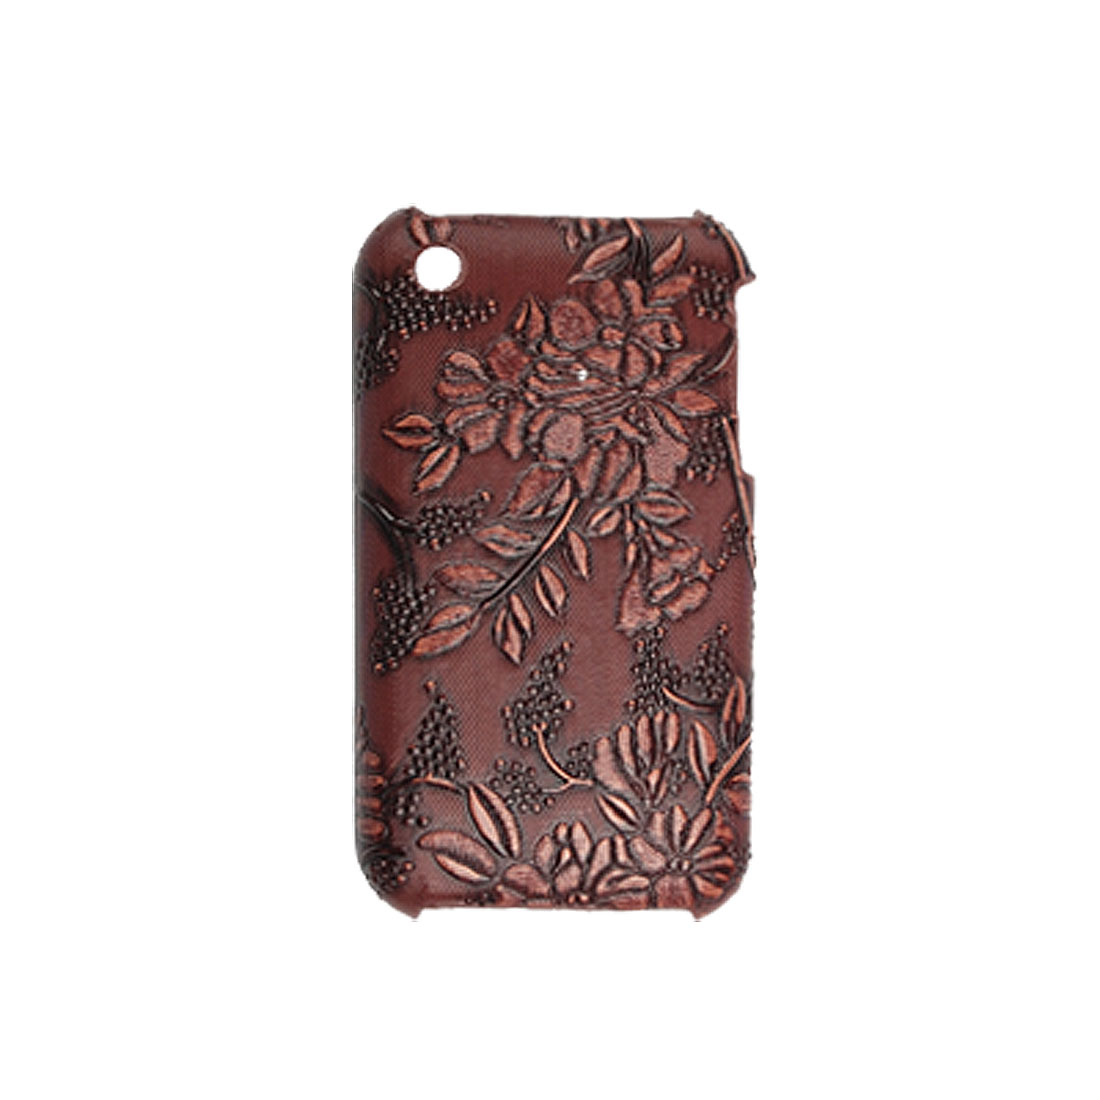 Screen Guard + Plastic Flower Back Case Cover for iPhone 3G